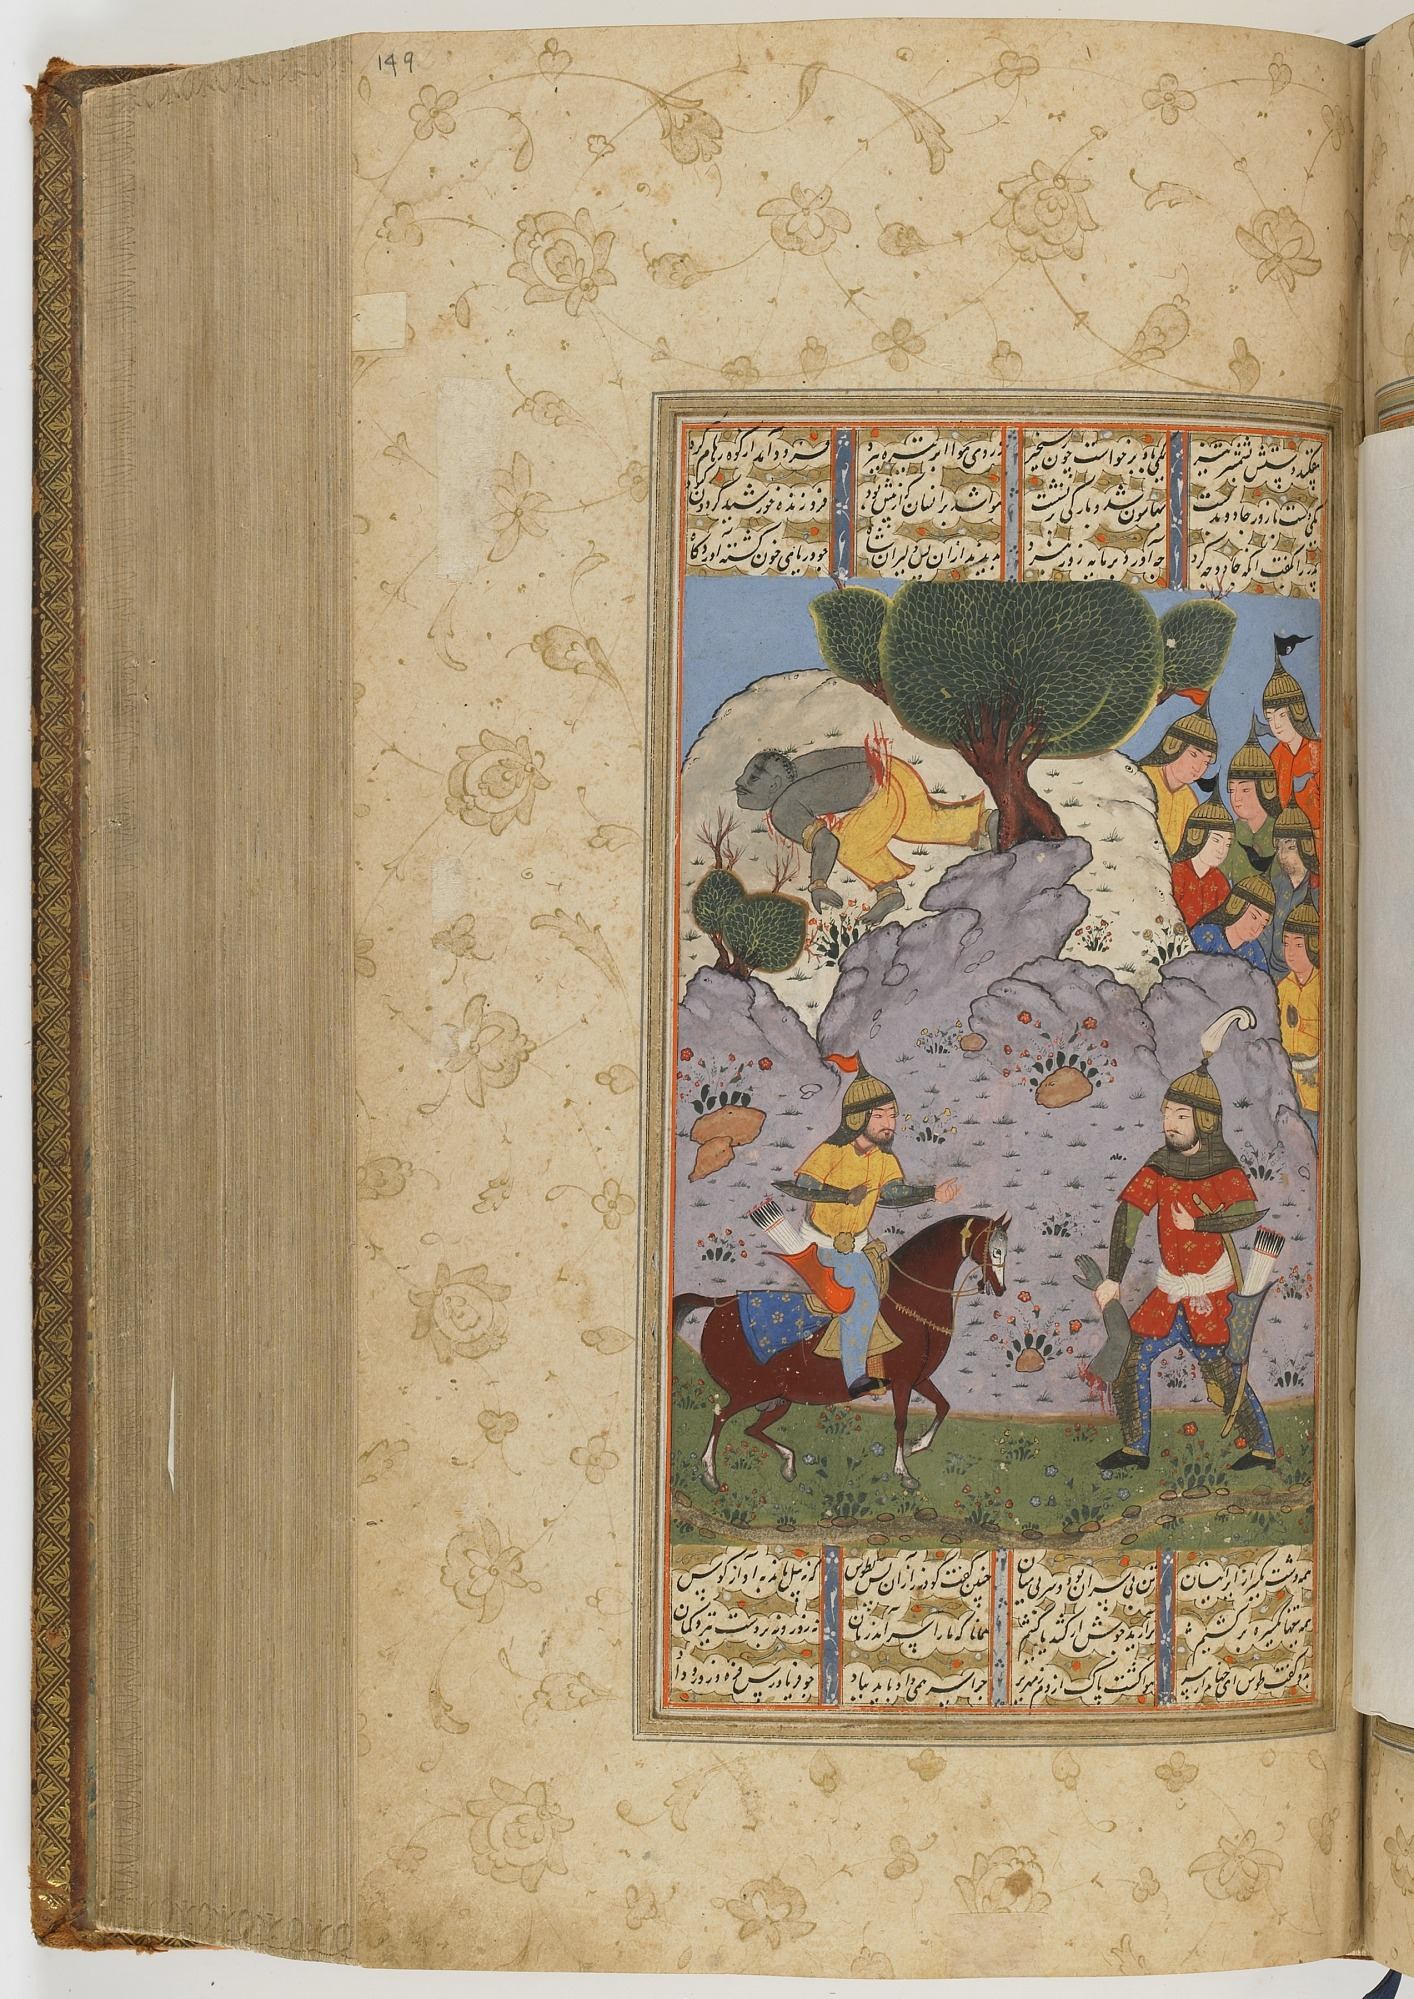 folio 149 recto: The Shahnama (Book of kings) by Firdausi (d. 1020)